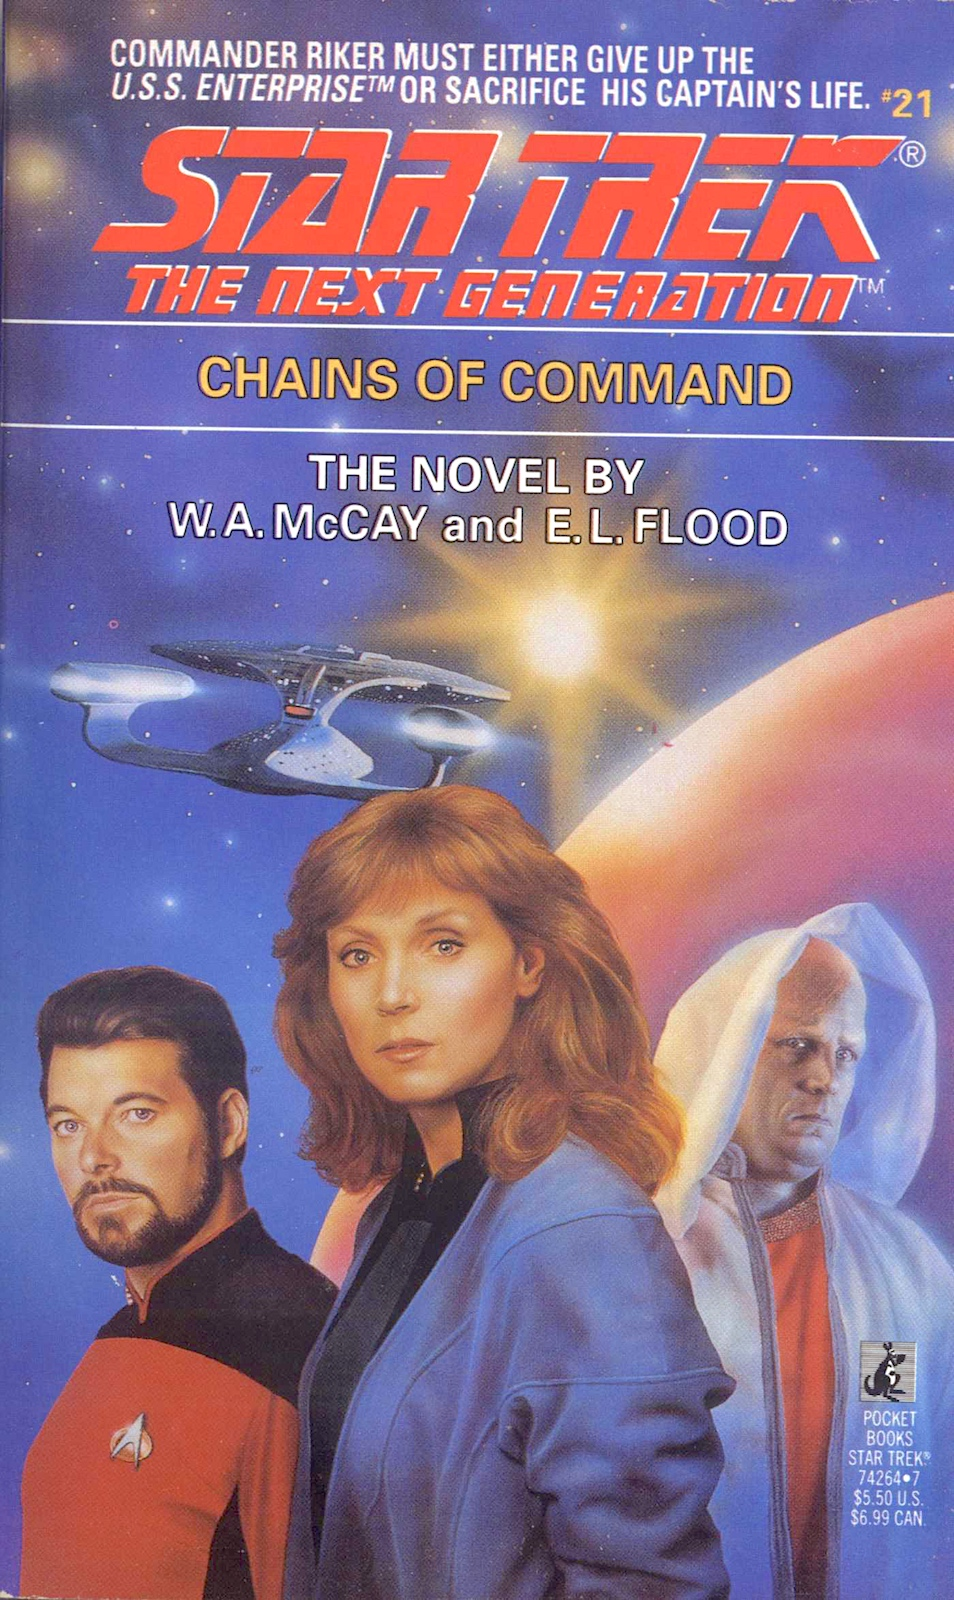 File:Chains of Command cover.jpg